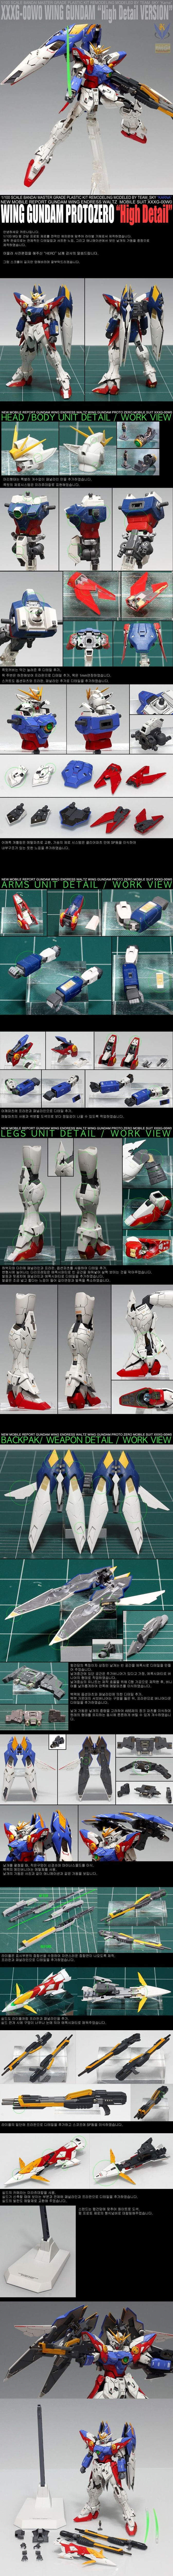 "MG 1/100 Wing Gundam Proto Zero [High Detail]: Remodeling Work by Team_Sky ""Karna"". Full photoreview [WIP too] Many Wallpaper Size Images 